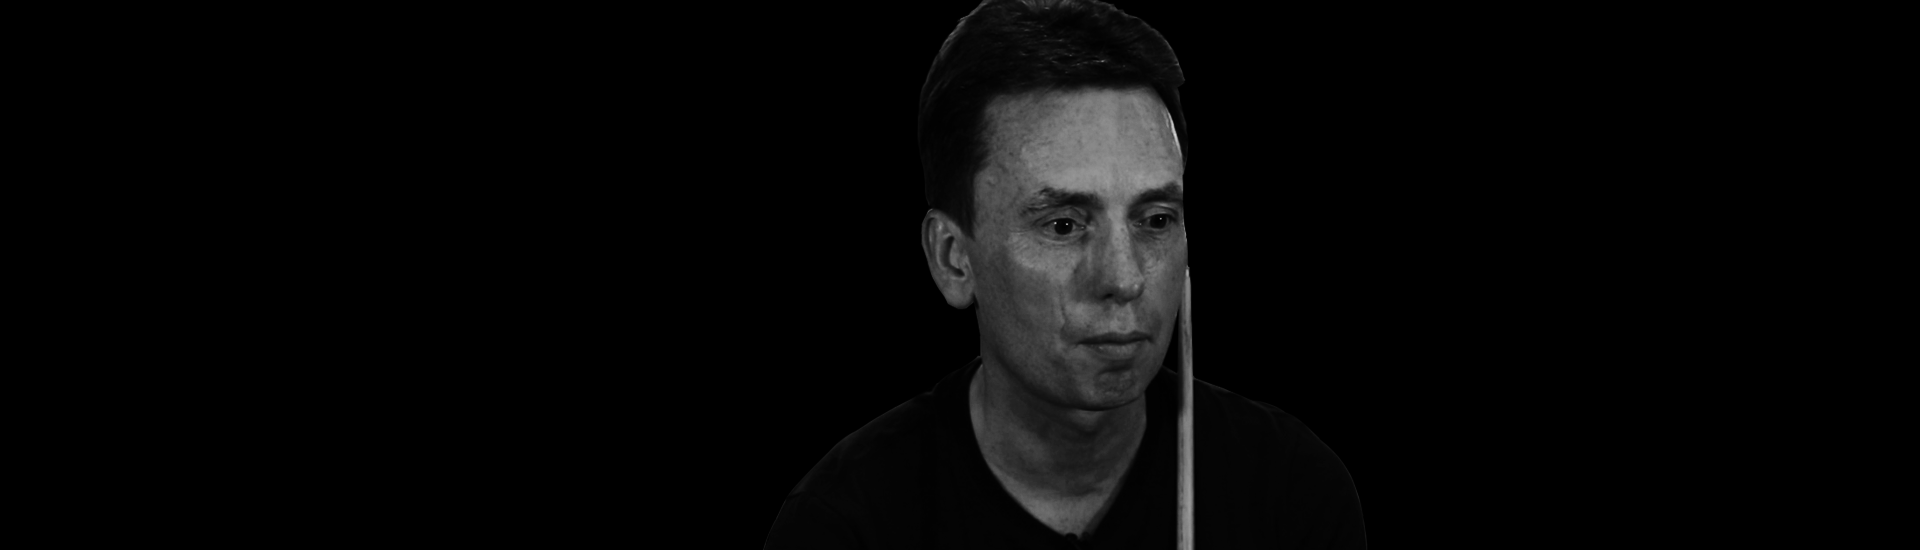 At The End Of The Day: Ken Doherty